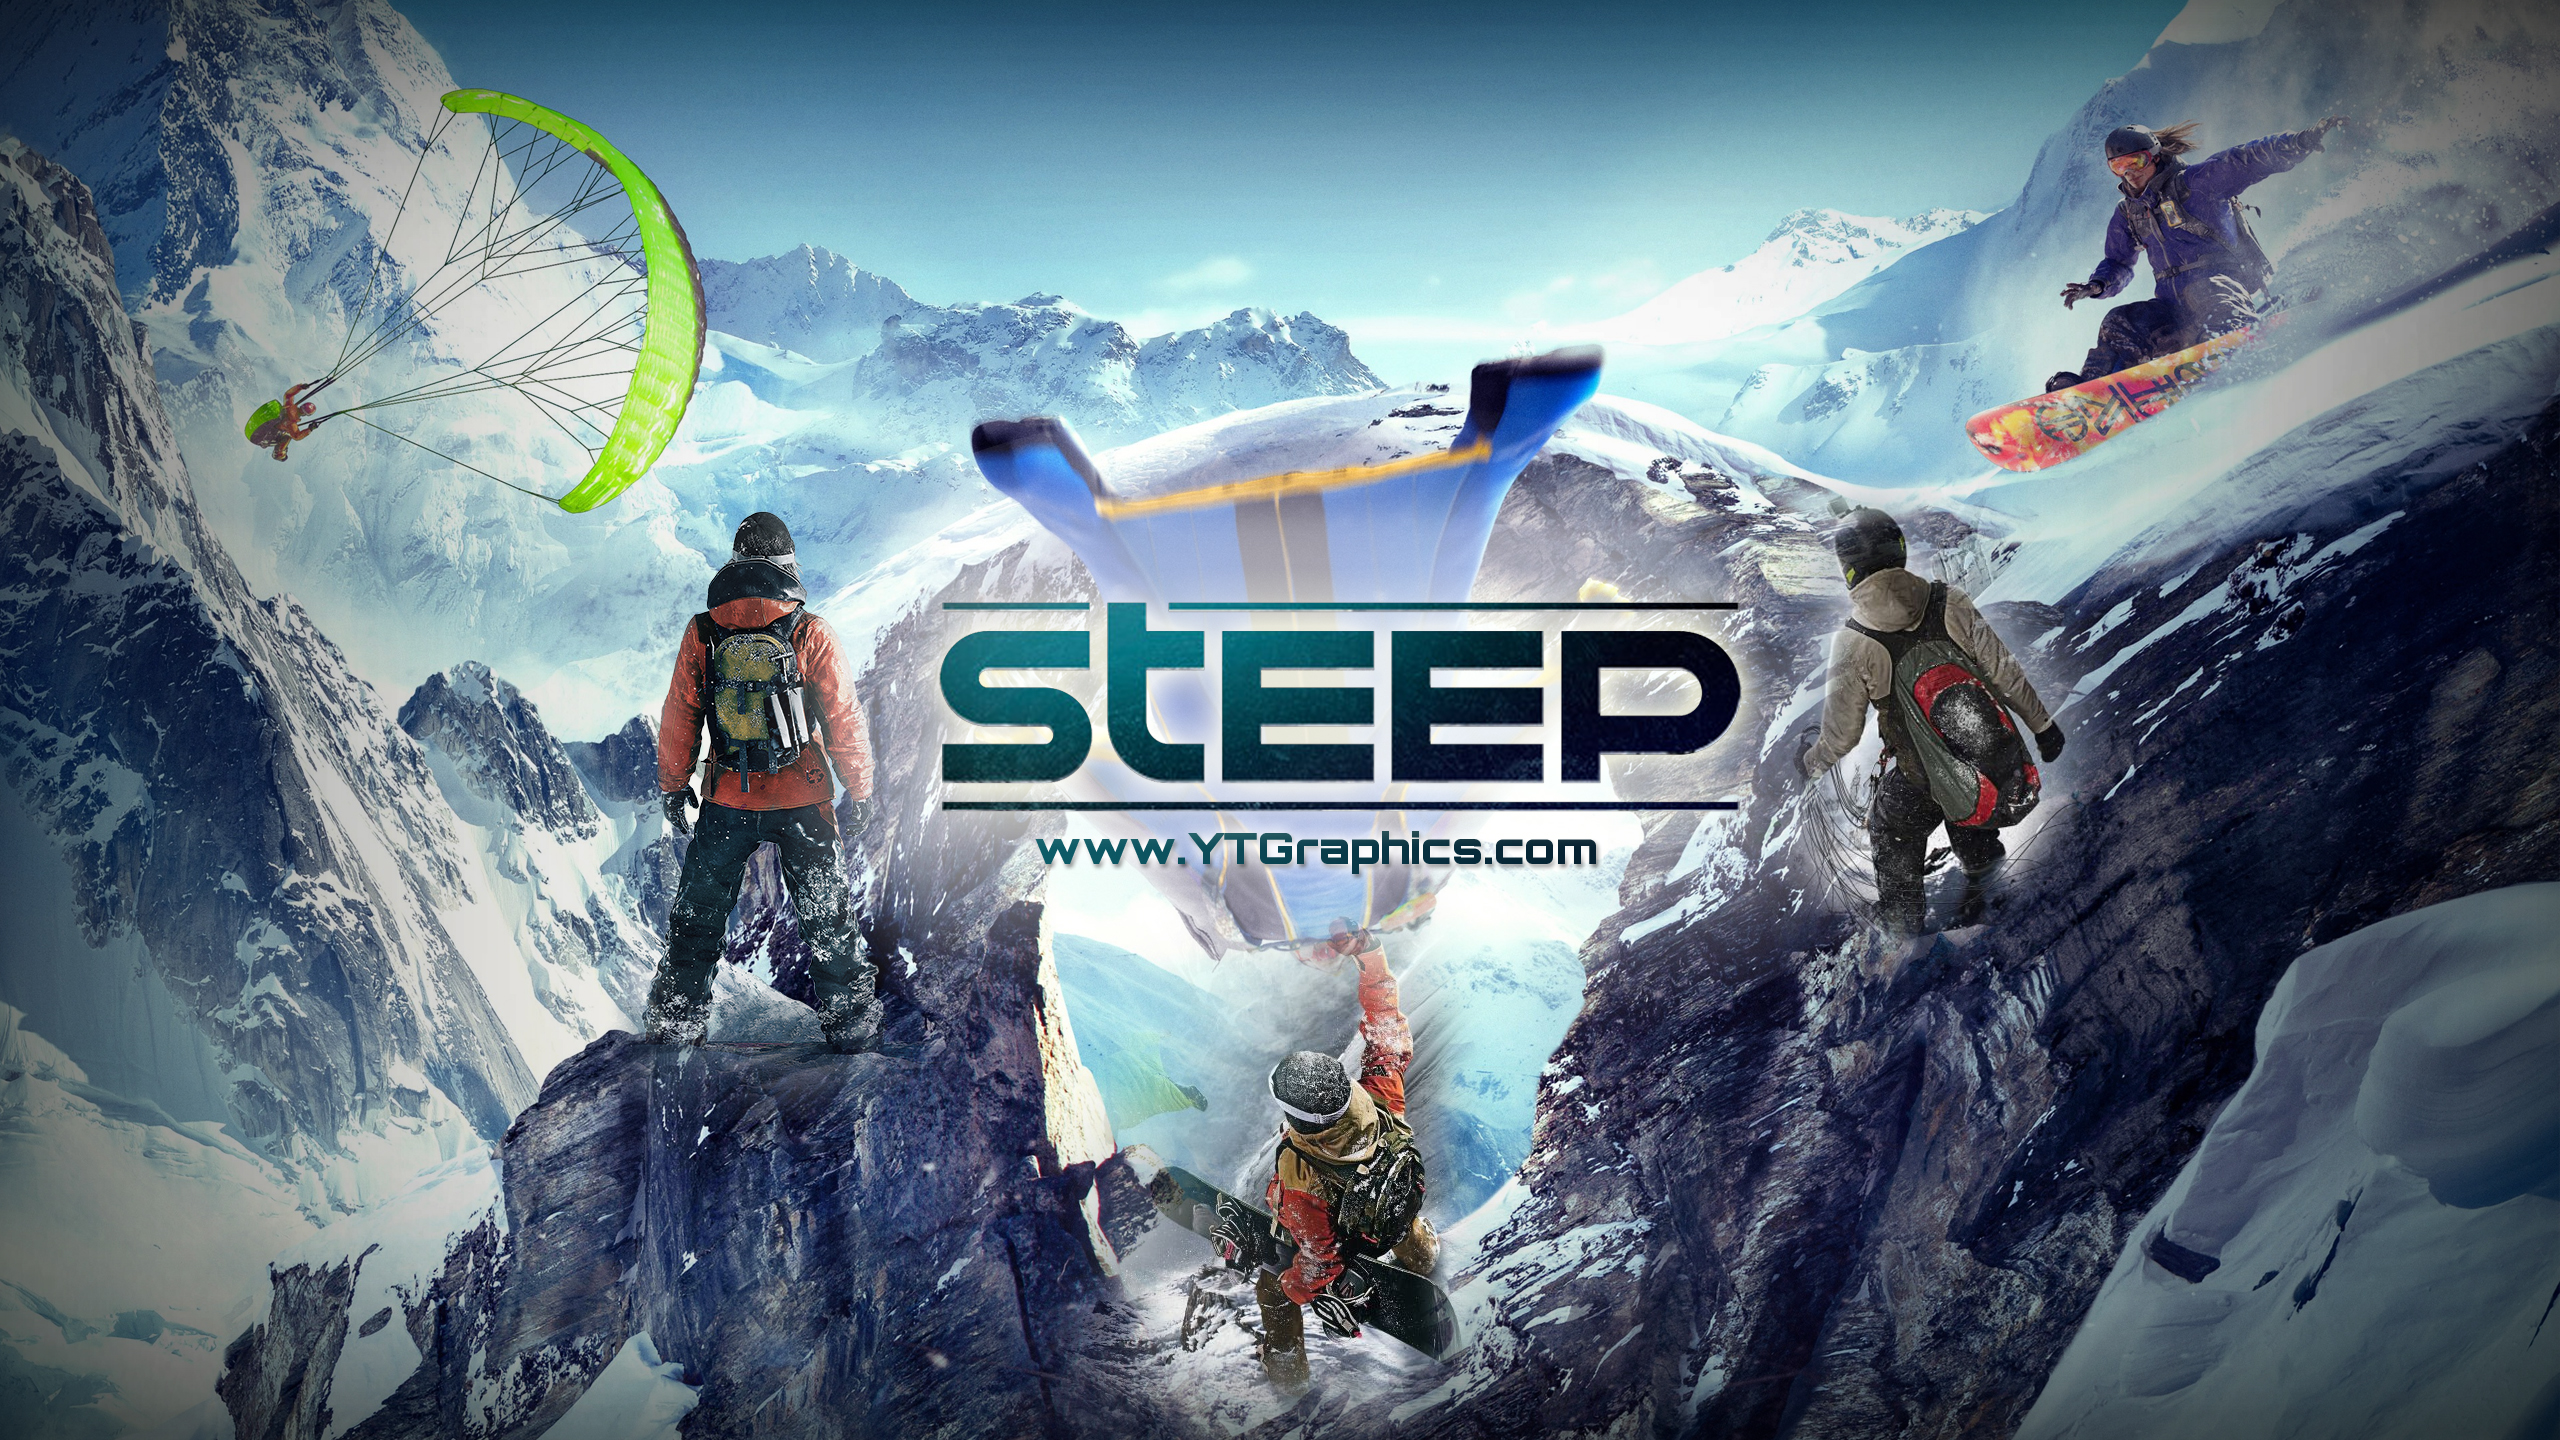 Steep YouTube Channel Art Banners